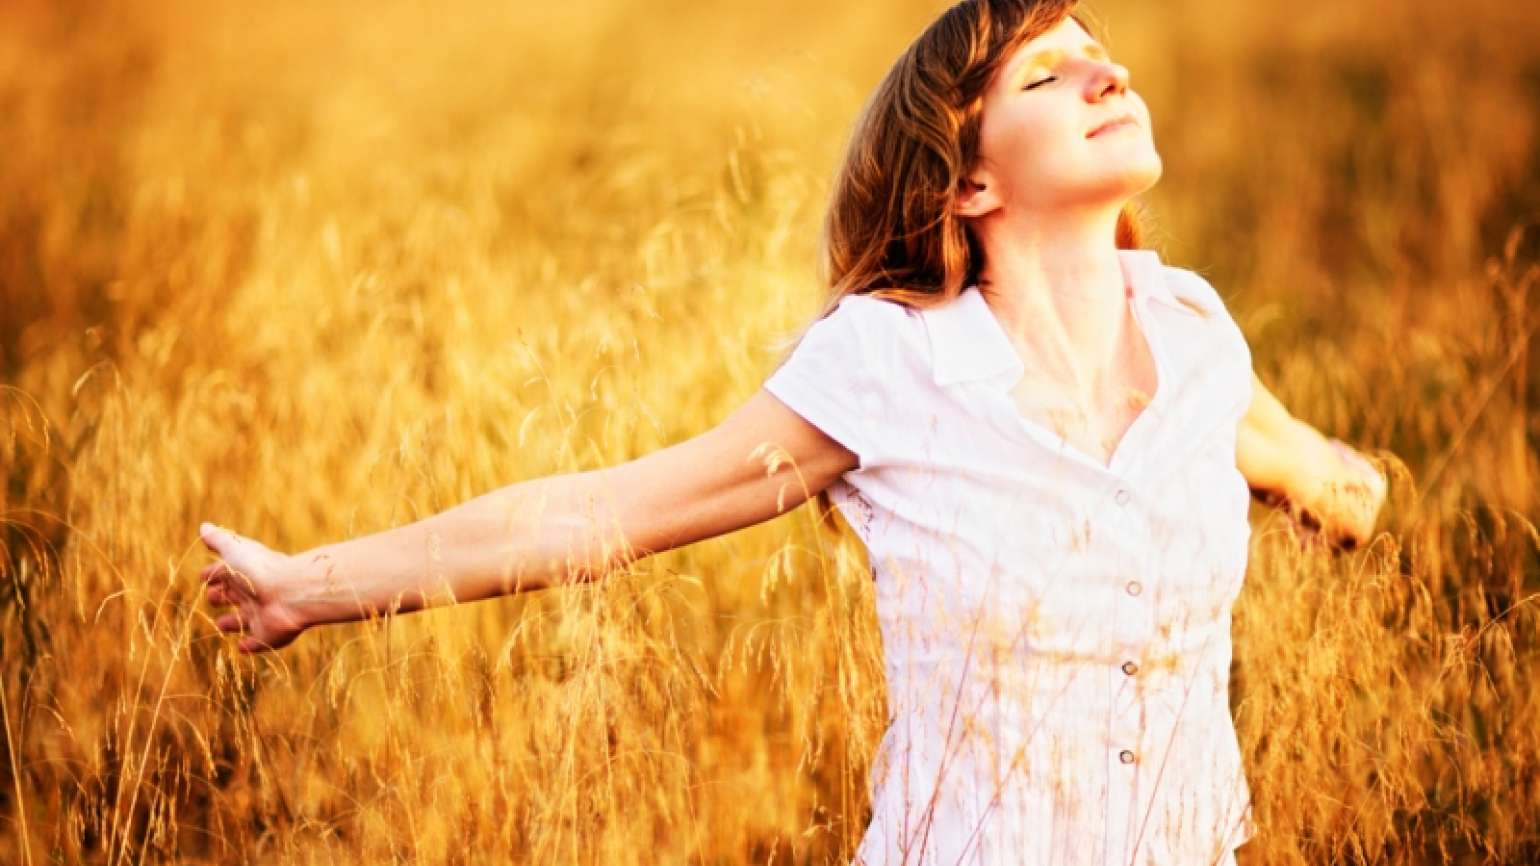 woman with arms outstretched in a field of wheat.